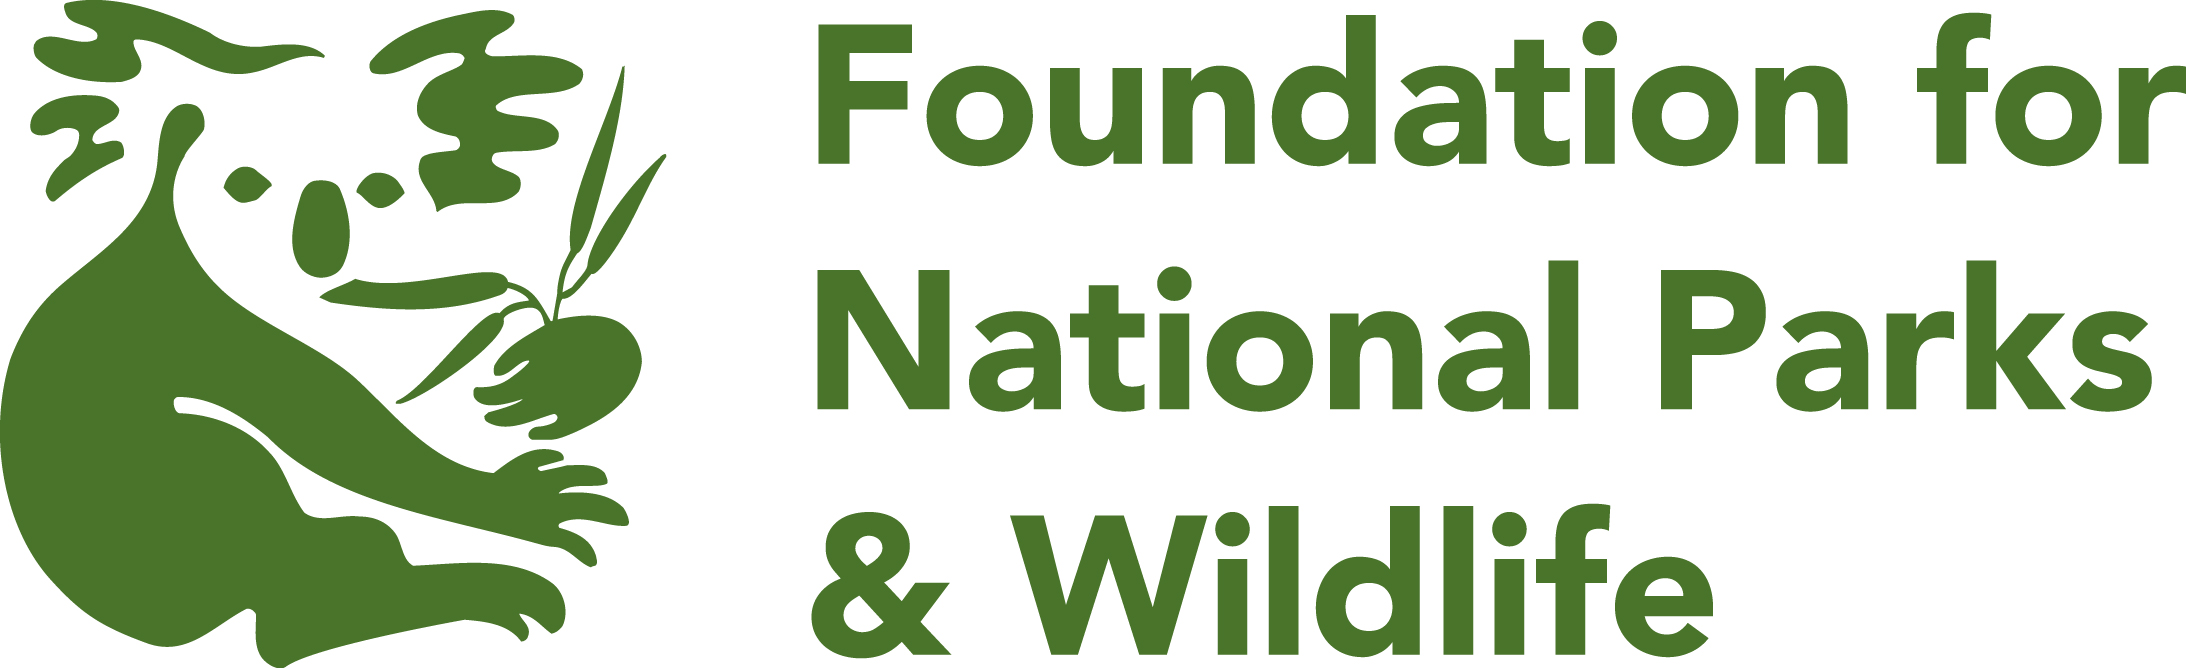 Foundation for National Parks & Wildlife